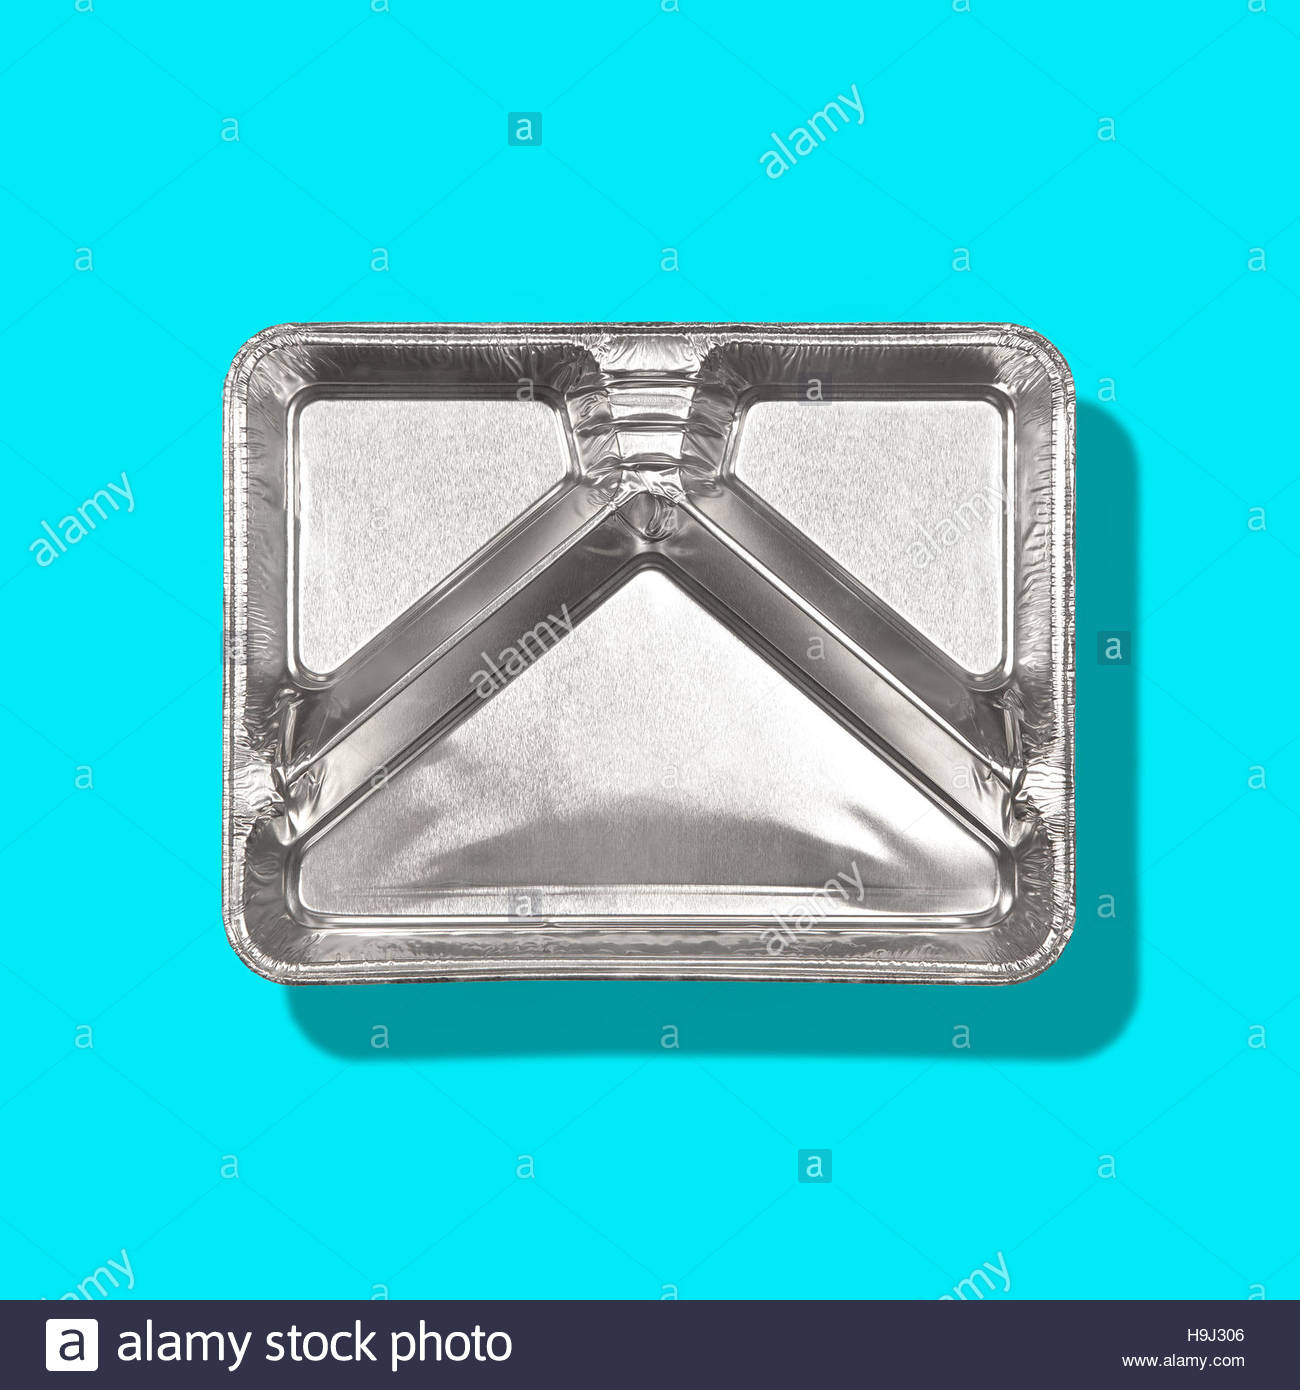 TV dinner tray vintage retro meal aluminum food dish on plain background Stock Photo